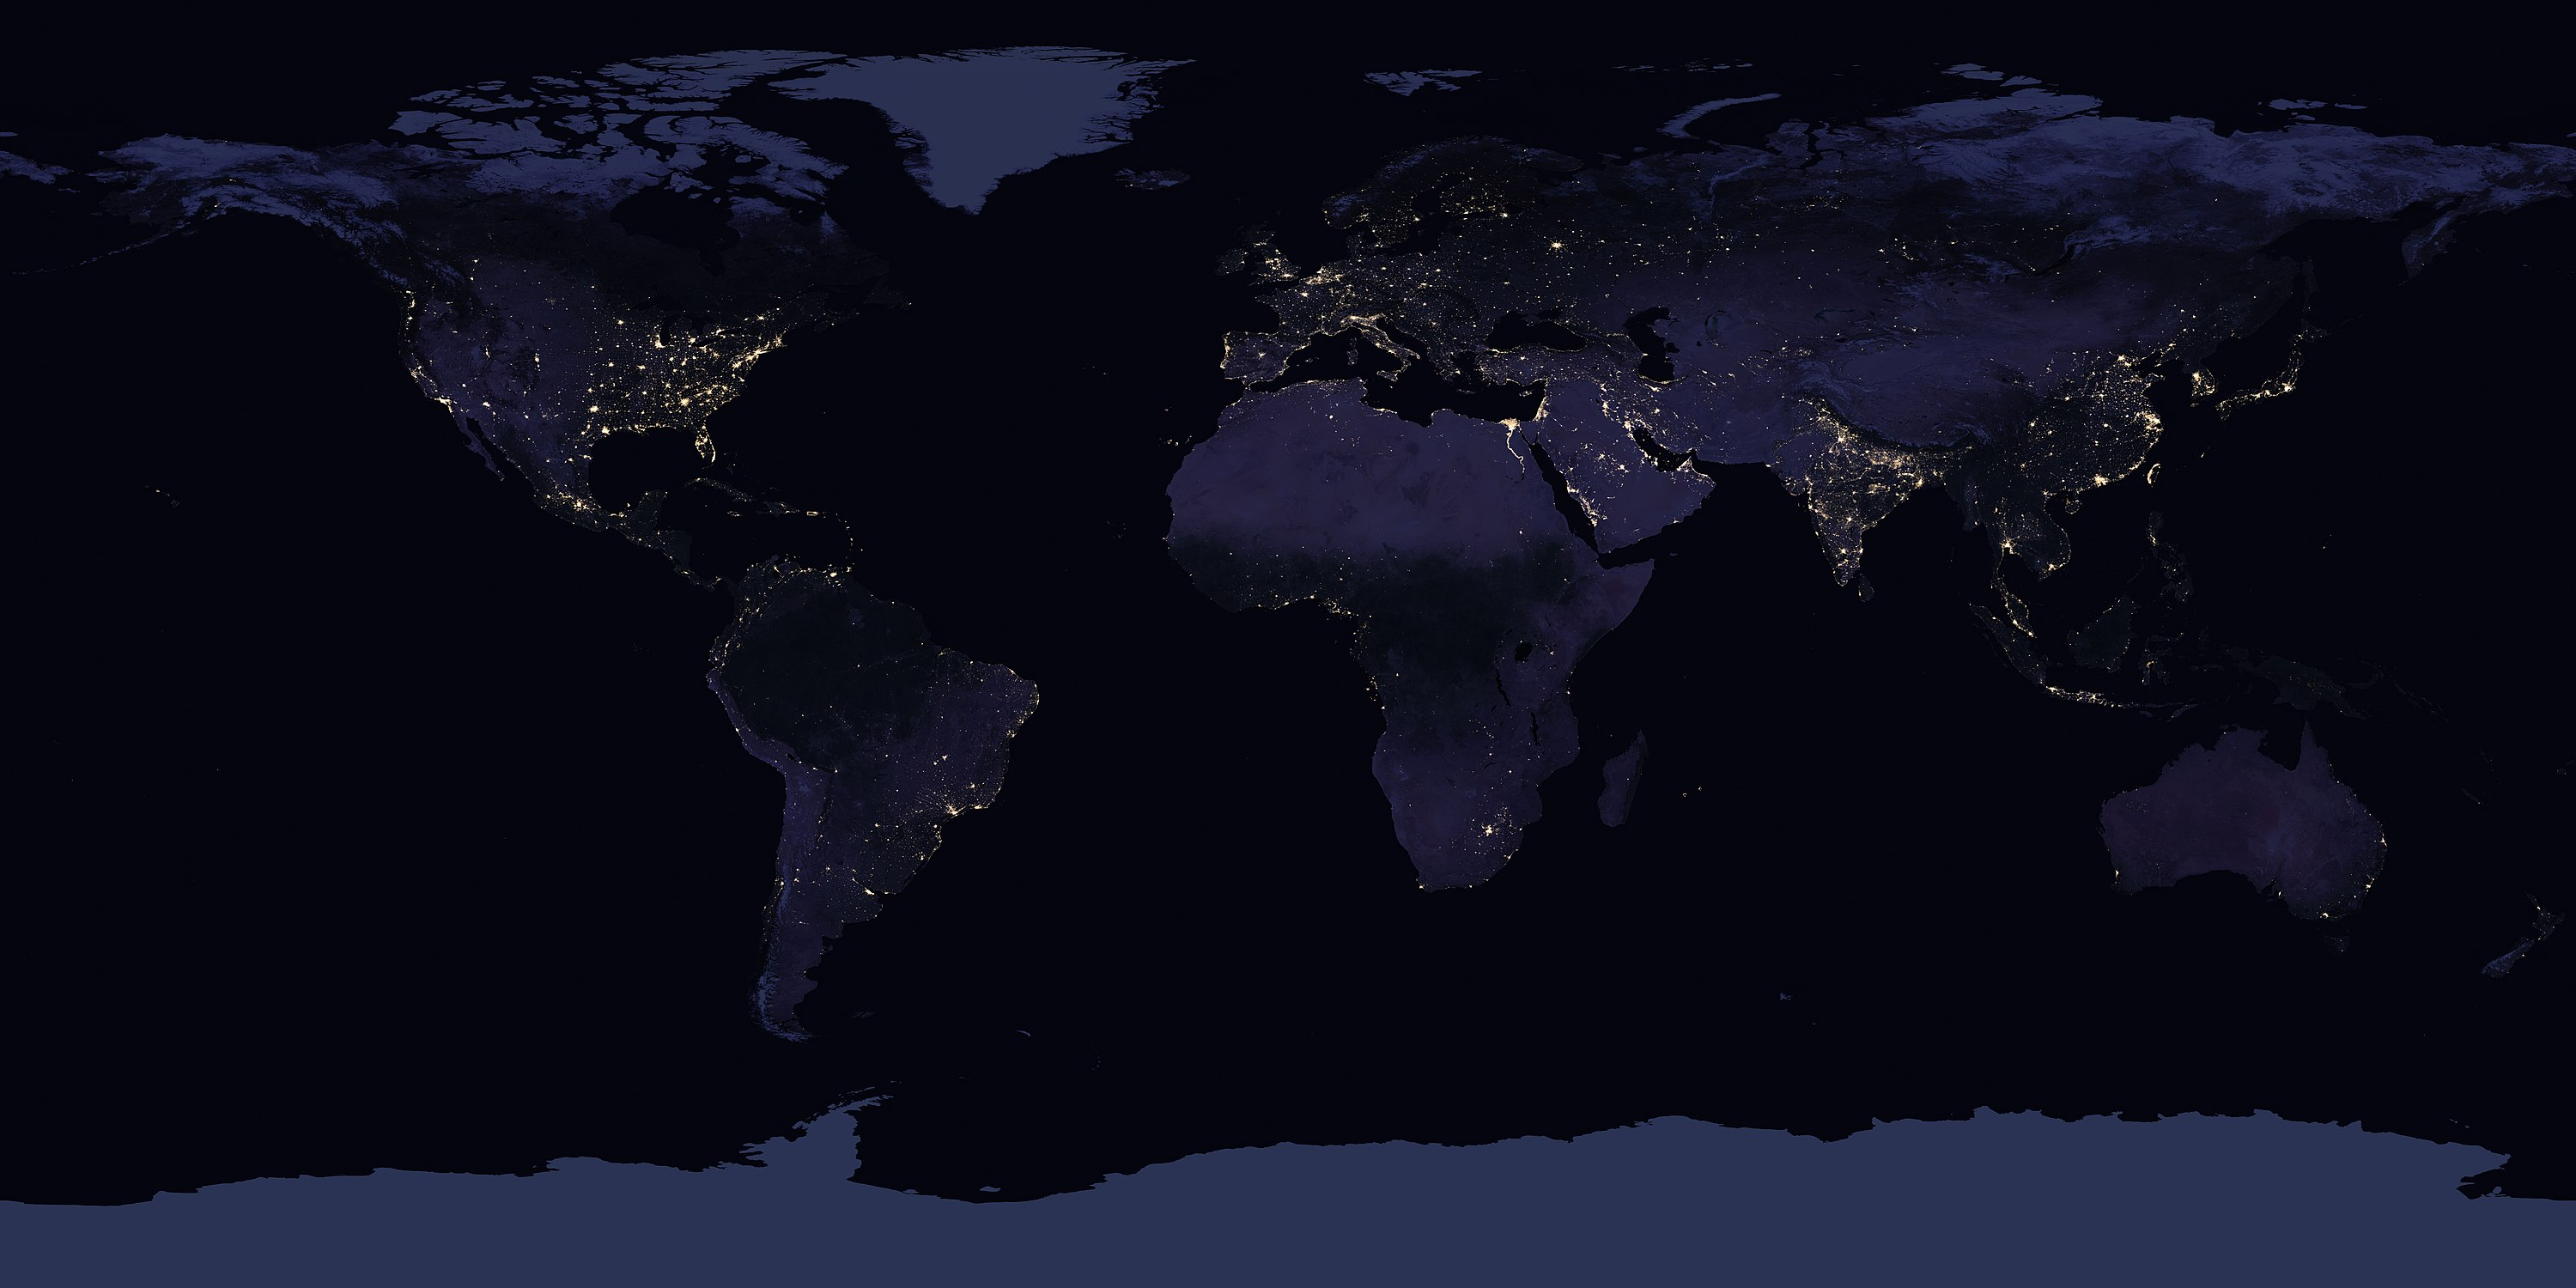 Night light wikipedia - A Worldwide Cloud Free Mosaic From The Suomi Npp Satellite Showing The Extent Of Visible Lights In 2016 The Effects Of Light Pollution Especially